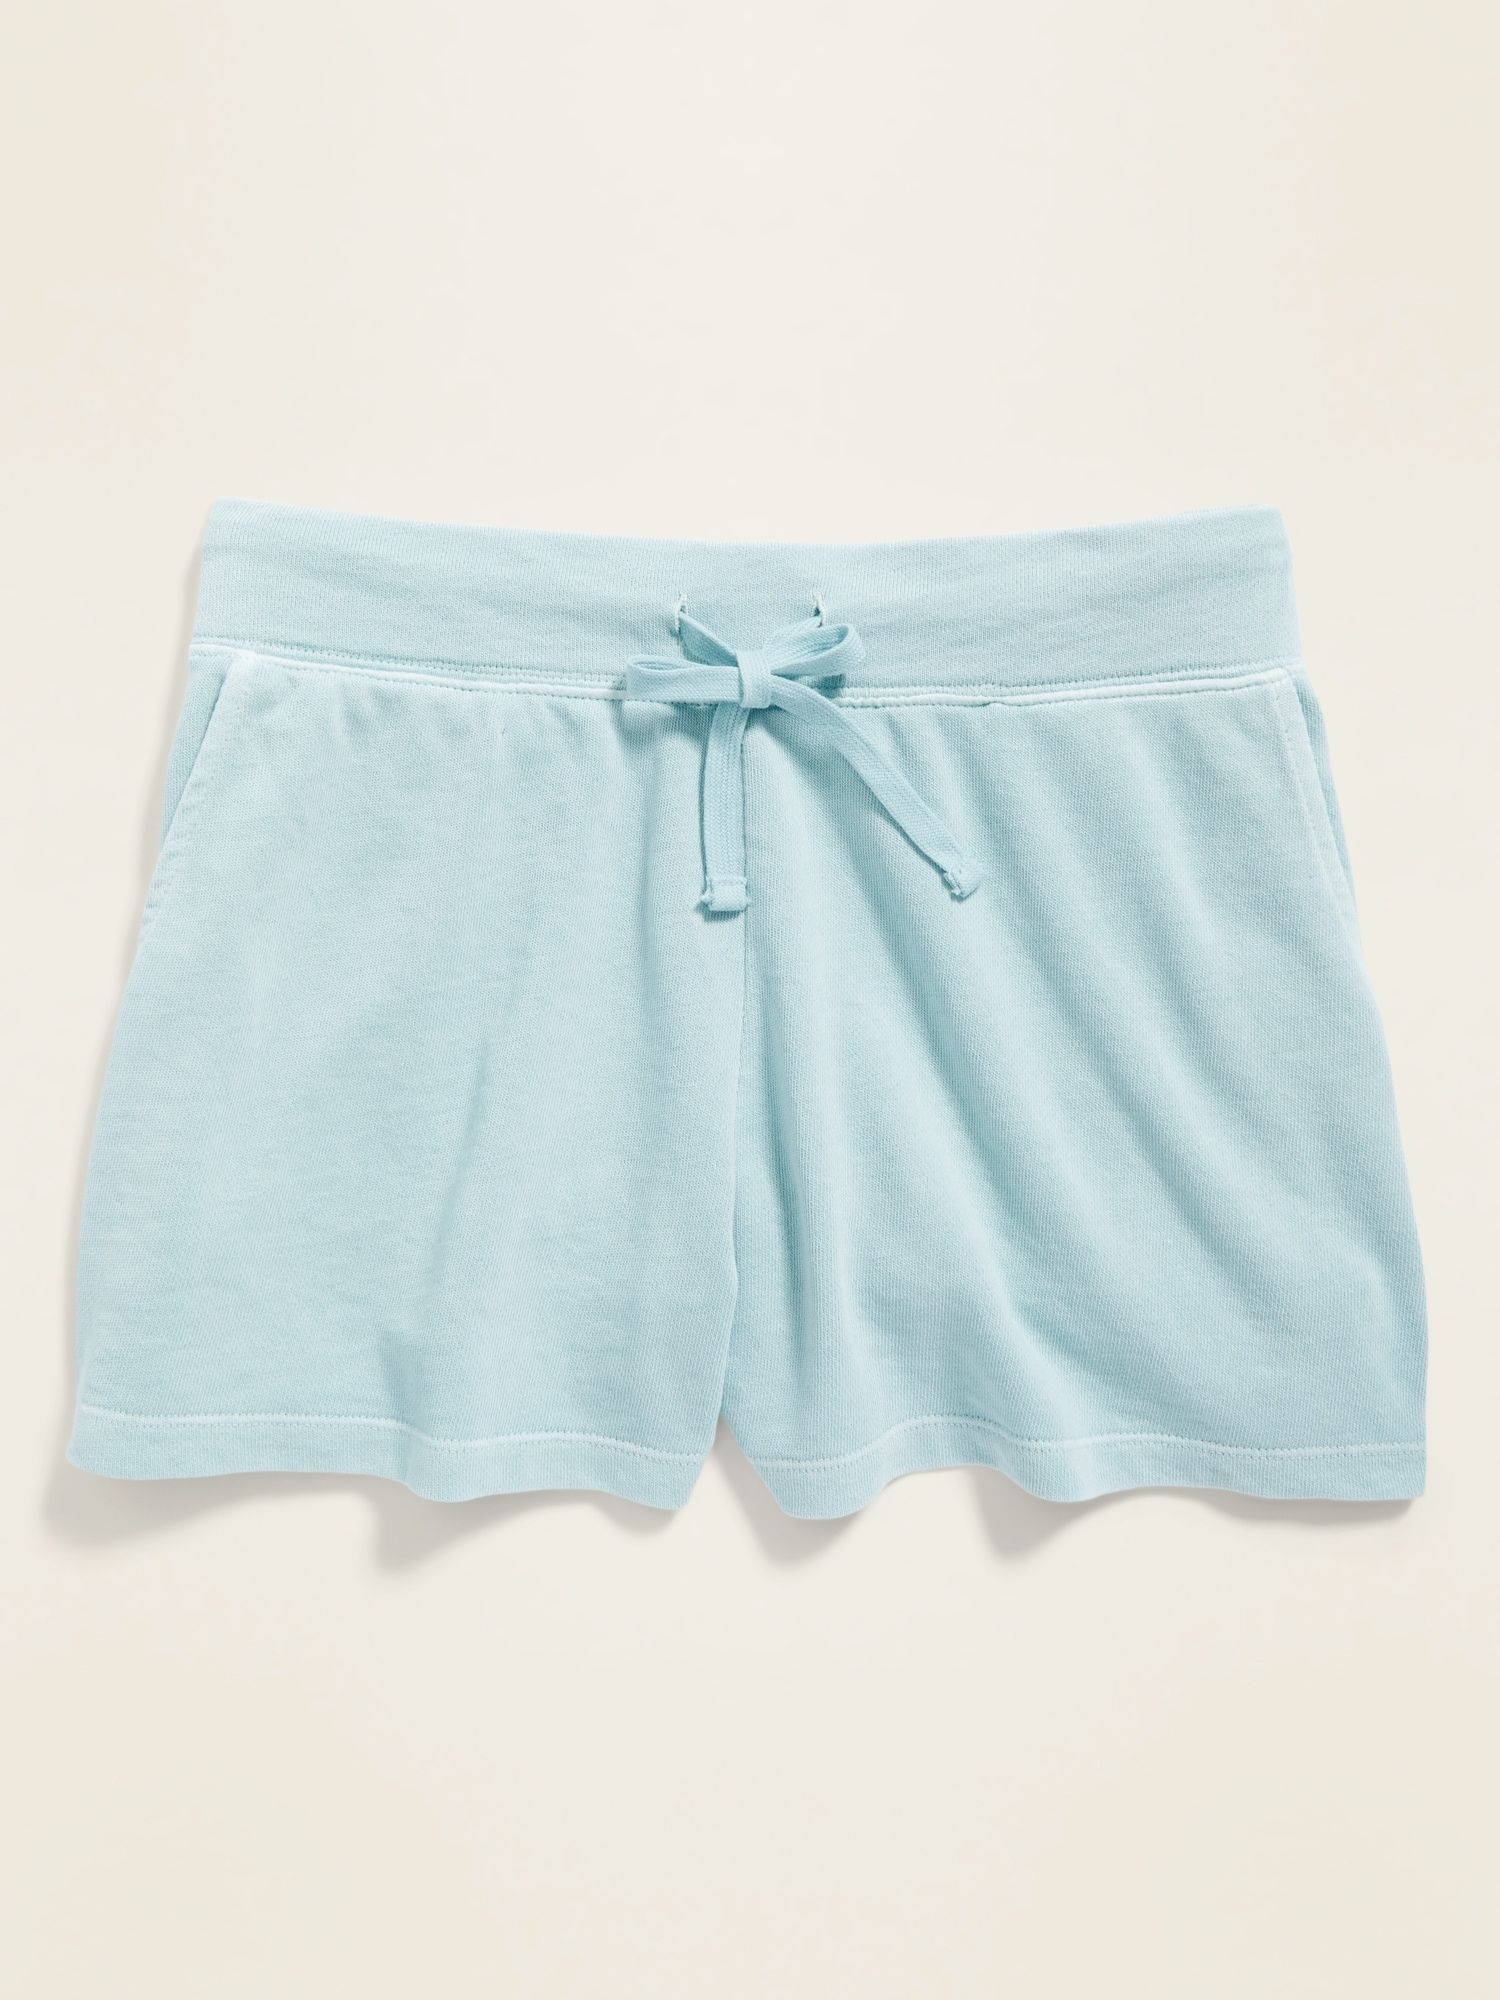 familiare Composto Bourgeon  French Terry Drawstring Shorts for Women -- 3-inch inseam | Old Navy in  2020 | Drawstring shorts, French terry, Terry shorts